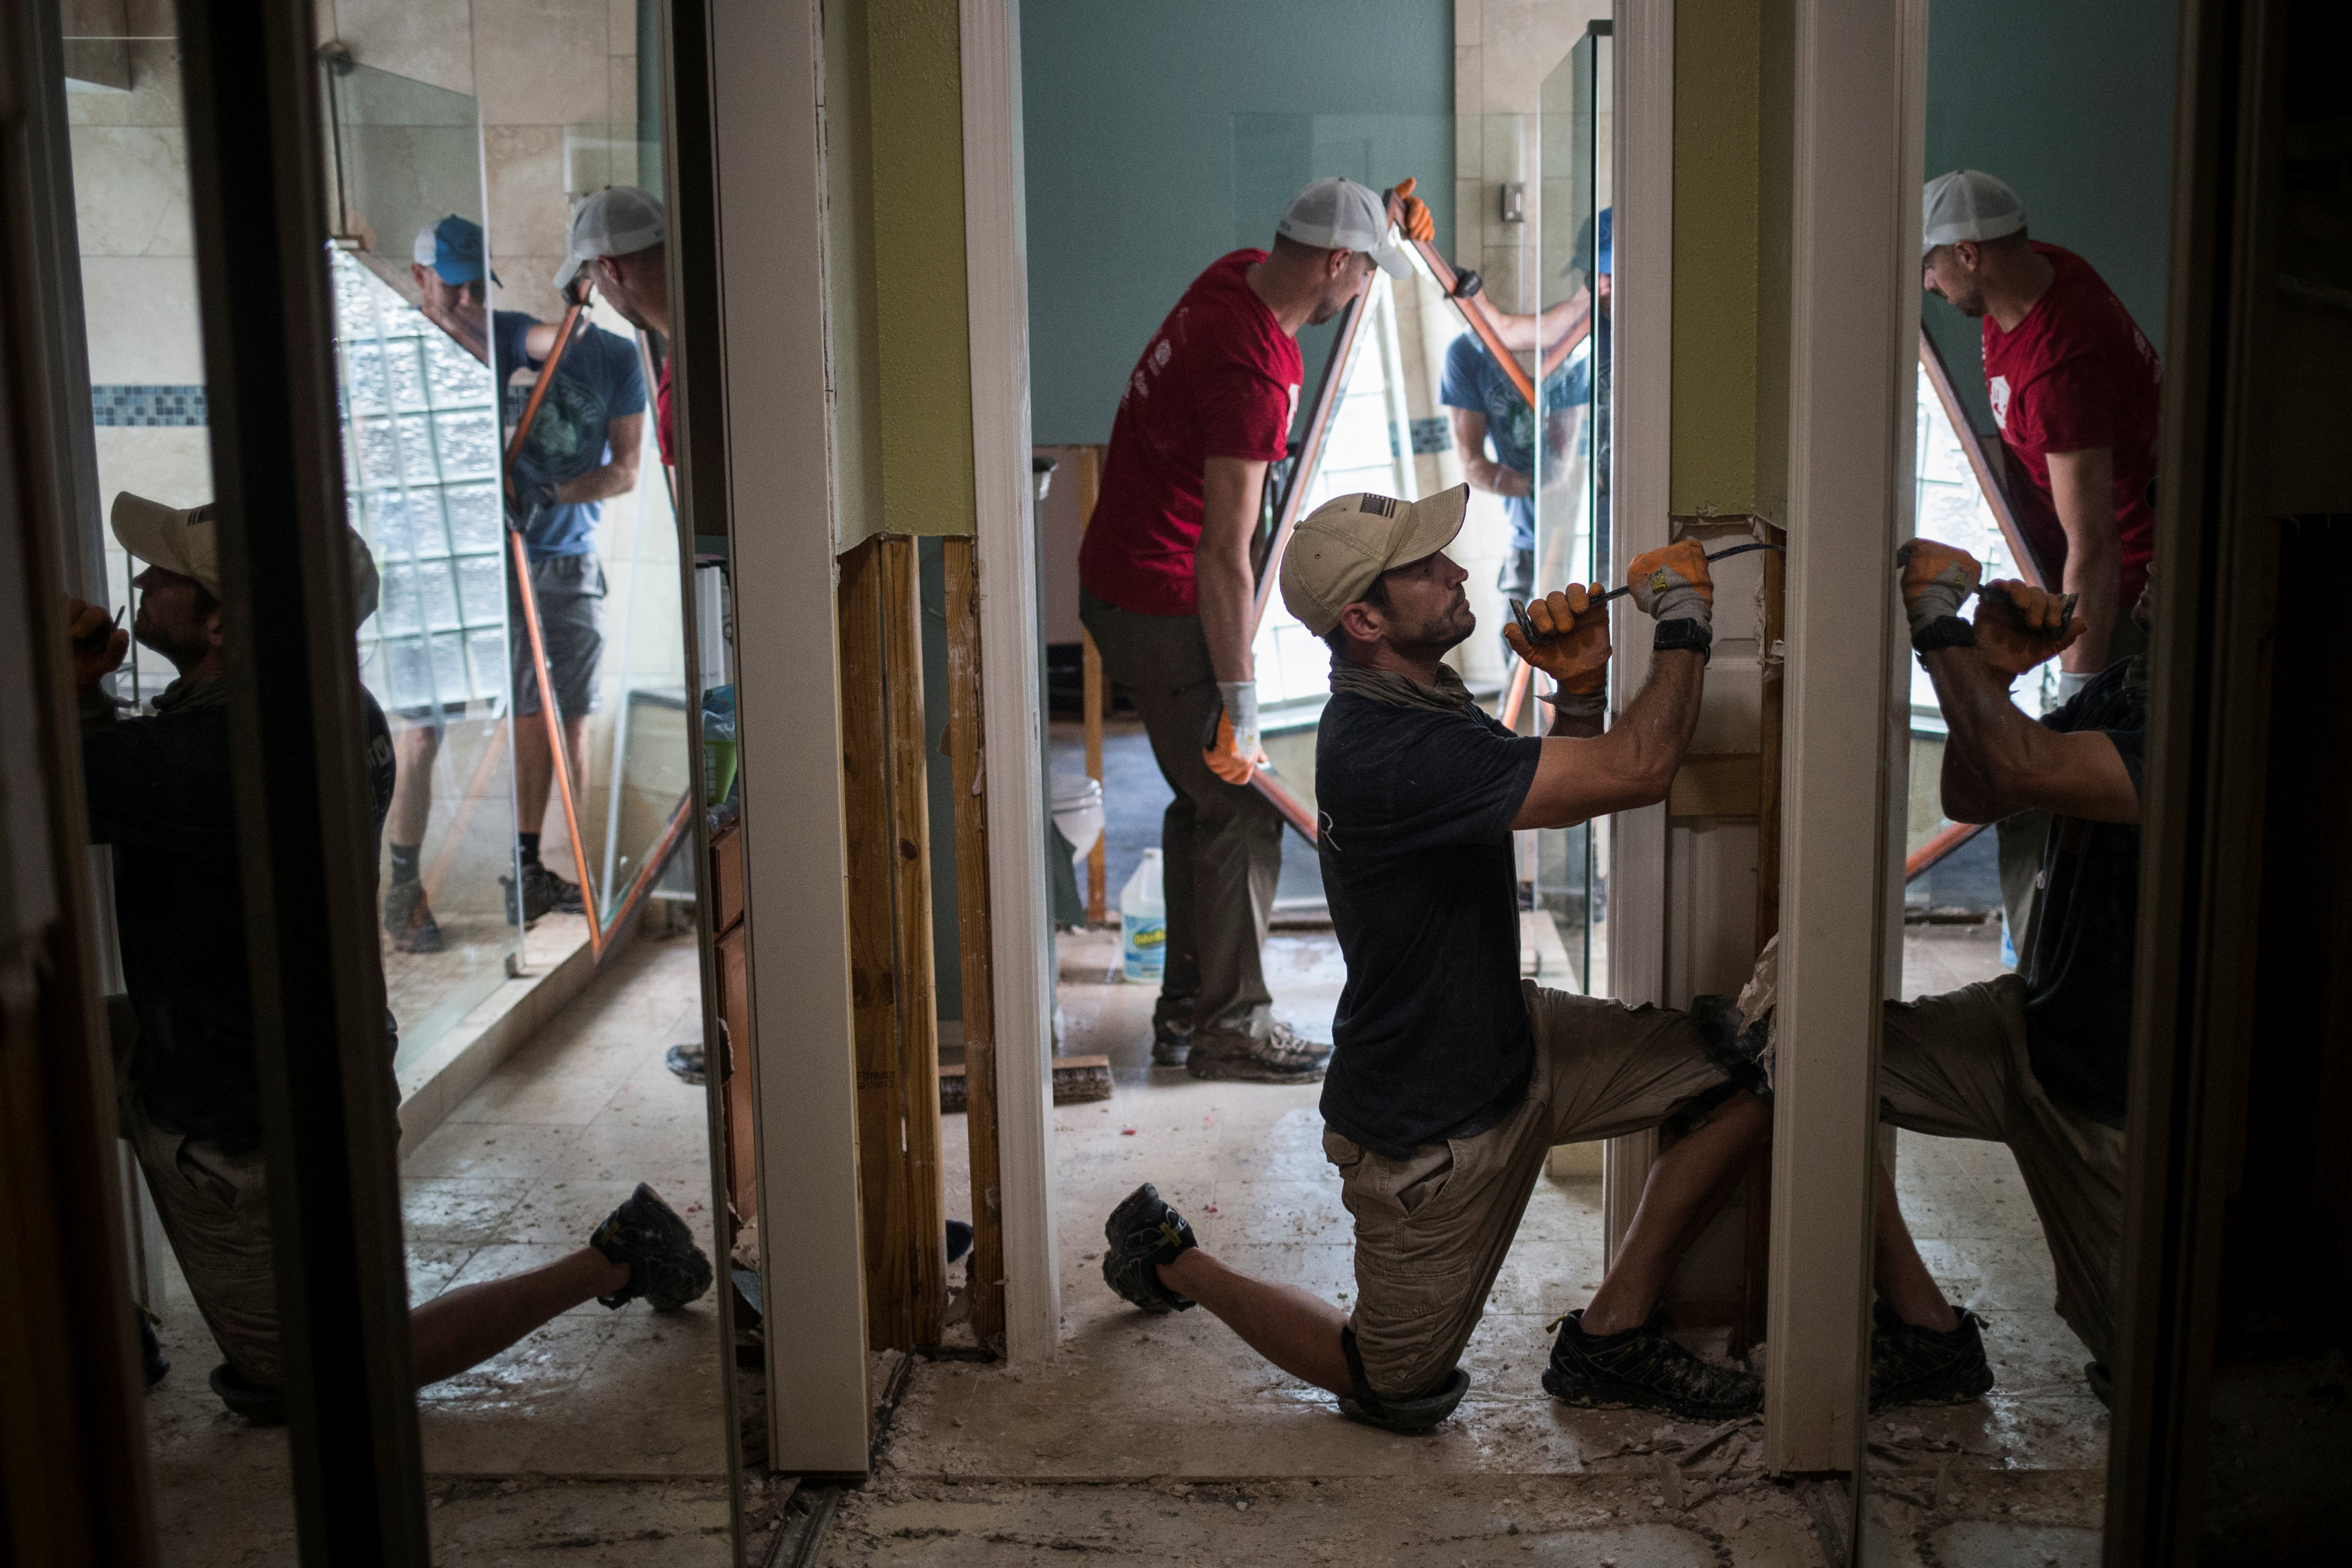 Ben Hyman and other samaritans help clear debris from the house of a neighbor which was left flooded from Tropical Storm Harvey in Houston, Texas on Sept. 3, 2017. (REUTERS/Adrees Latif)